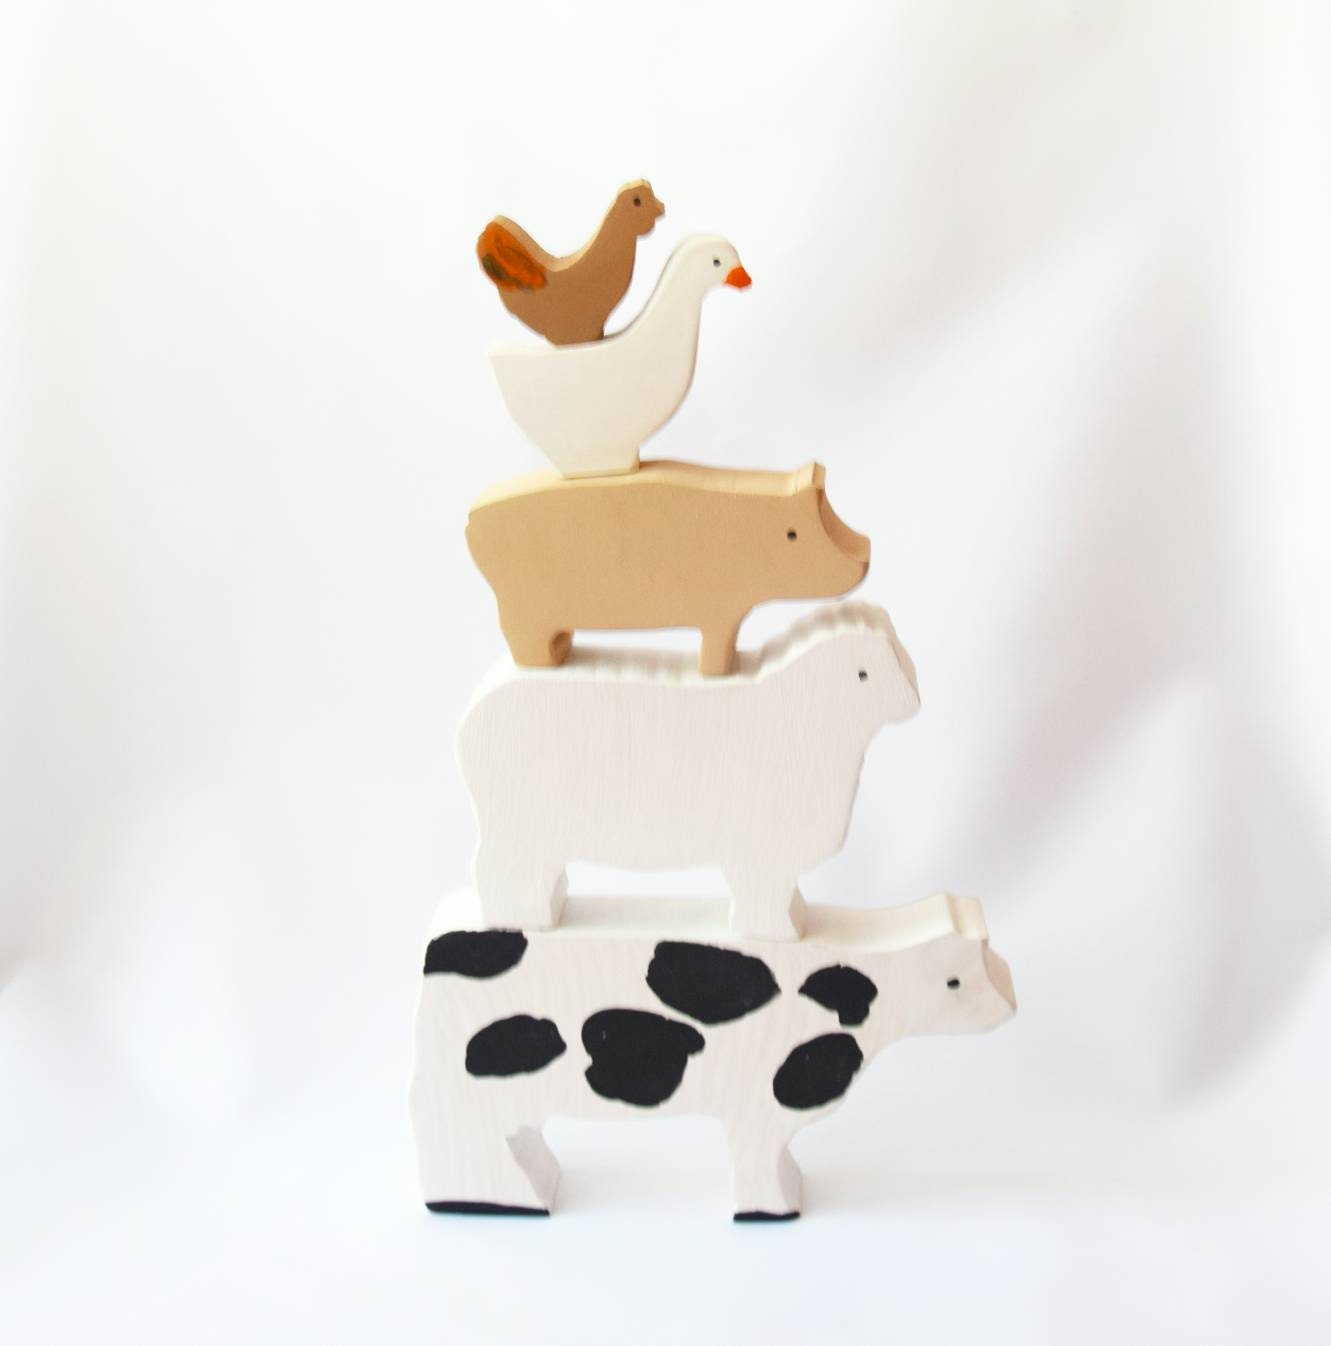 Wooden stacker animals toy, painted stacking animals, balance toy, balancing animals, farm animals toy, waldorf wooden toy, wooden toy set